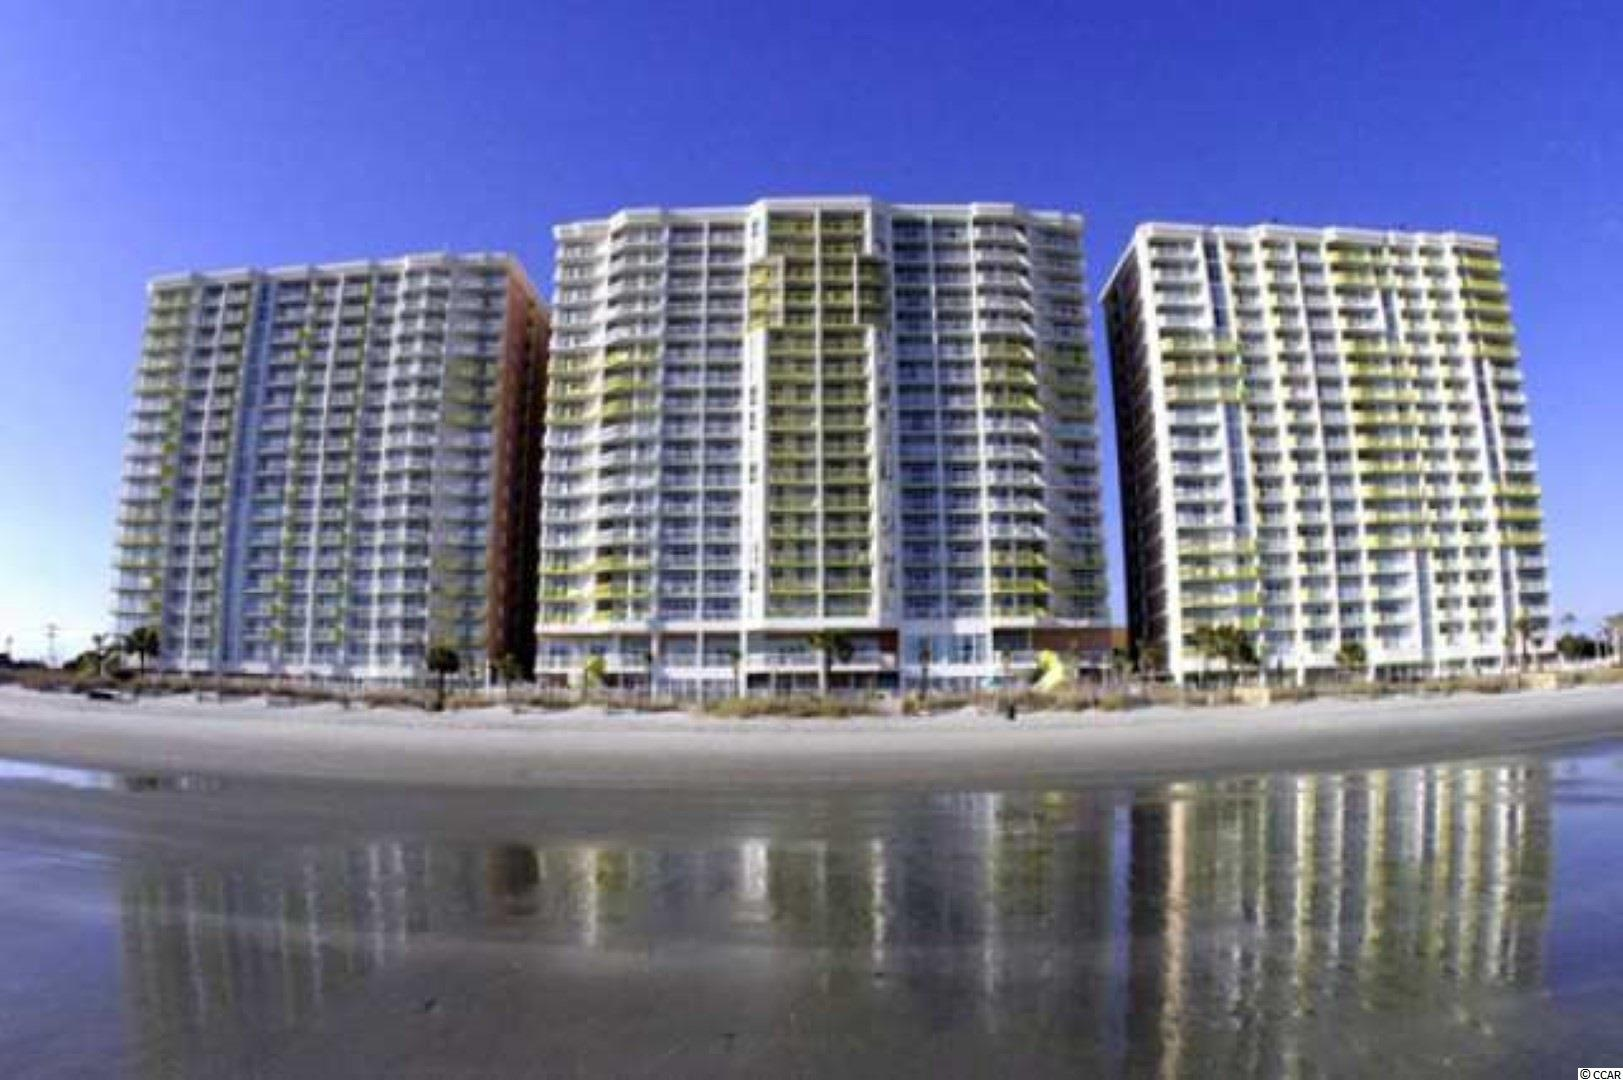 This is a lovely oceanfront 2 bedrooms 2 bath end unit in the highly sought-after oceanfront beach resort in North Myrtle Beach.  Baywatch Resort offers a unique experience for an unforgettable beach vacation.  Bay Watch Resort provides guests onsite amenities with beautiful views of North Myrtle Beach's expansive oceanfront. Their extensive amenities and services include indoor and outdoor water features, on-site restaurants, spacious, fully-furnished rooms, and seasonal entertainment. This is a year-round resort due to its indoor amenities that offer a unique experience even in the cooler months.  There are two restaurants, an inside bar, and a seasonal poolside tiki bar.  This location allows the homeowner or vacationer quick access to the other area attractions such as Barefoot Landing, Alabama Theatre, House of Blues, shopping, dining, and much more.  So if you are looking for that top-of-the-line oceanfront property look no further.  Make an appointment to see this unit today as in the market it will not last long! Square footage is approximate and not guaranteed. Buyers responsible for verification.